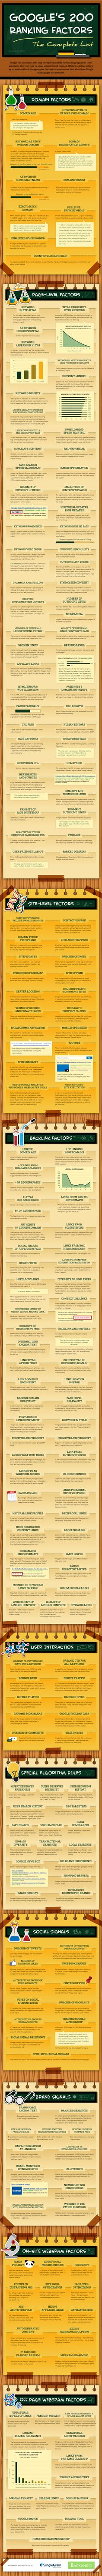 Single Grain Digital Marketing did this #infographic with ran on Entrepreur.com of all 200 factors that make up #Google's #search results algorithm.  Of course this changes all the time, but for the next ten minutes, this is legit!